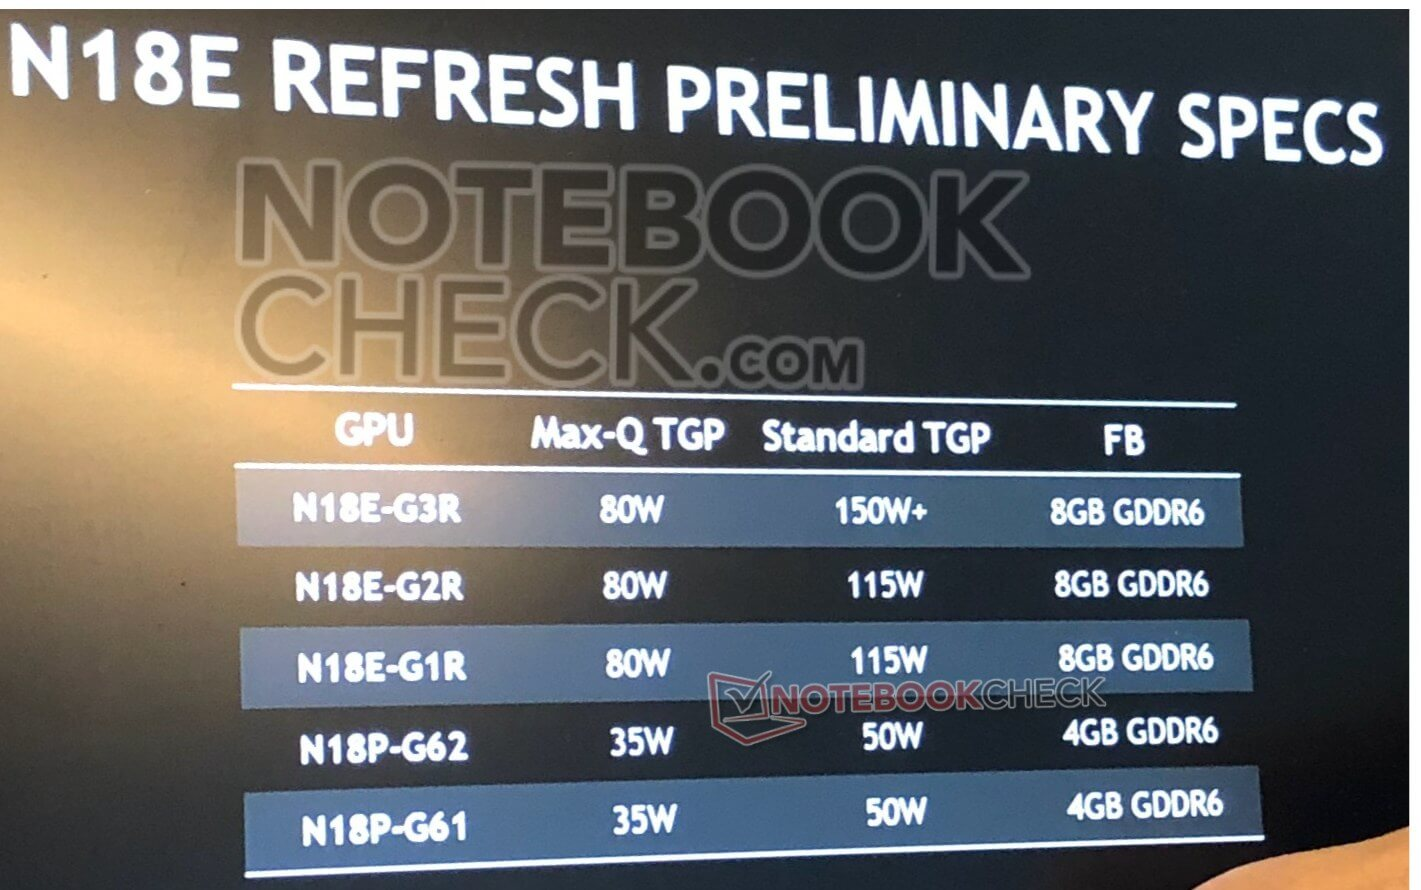 Rumor: Nvidia plans to bring Super refresh to notebooks in March 2020